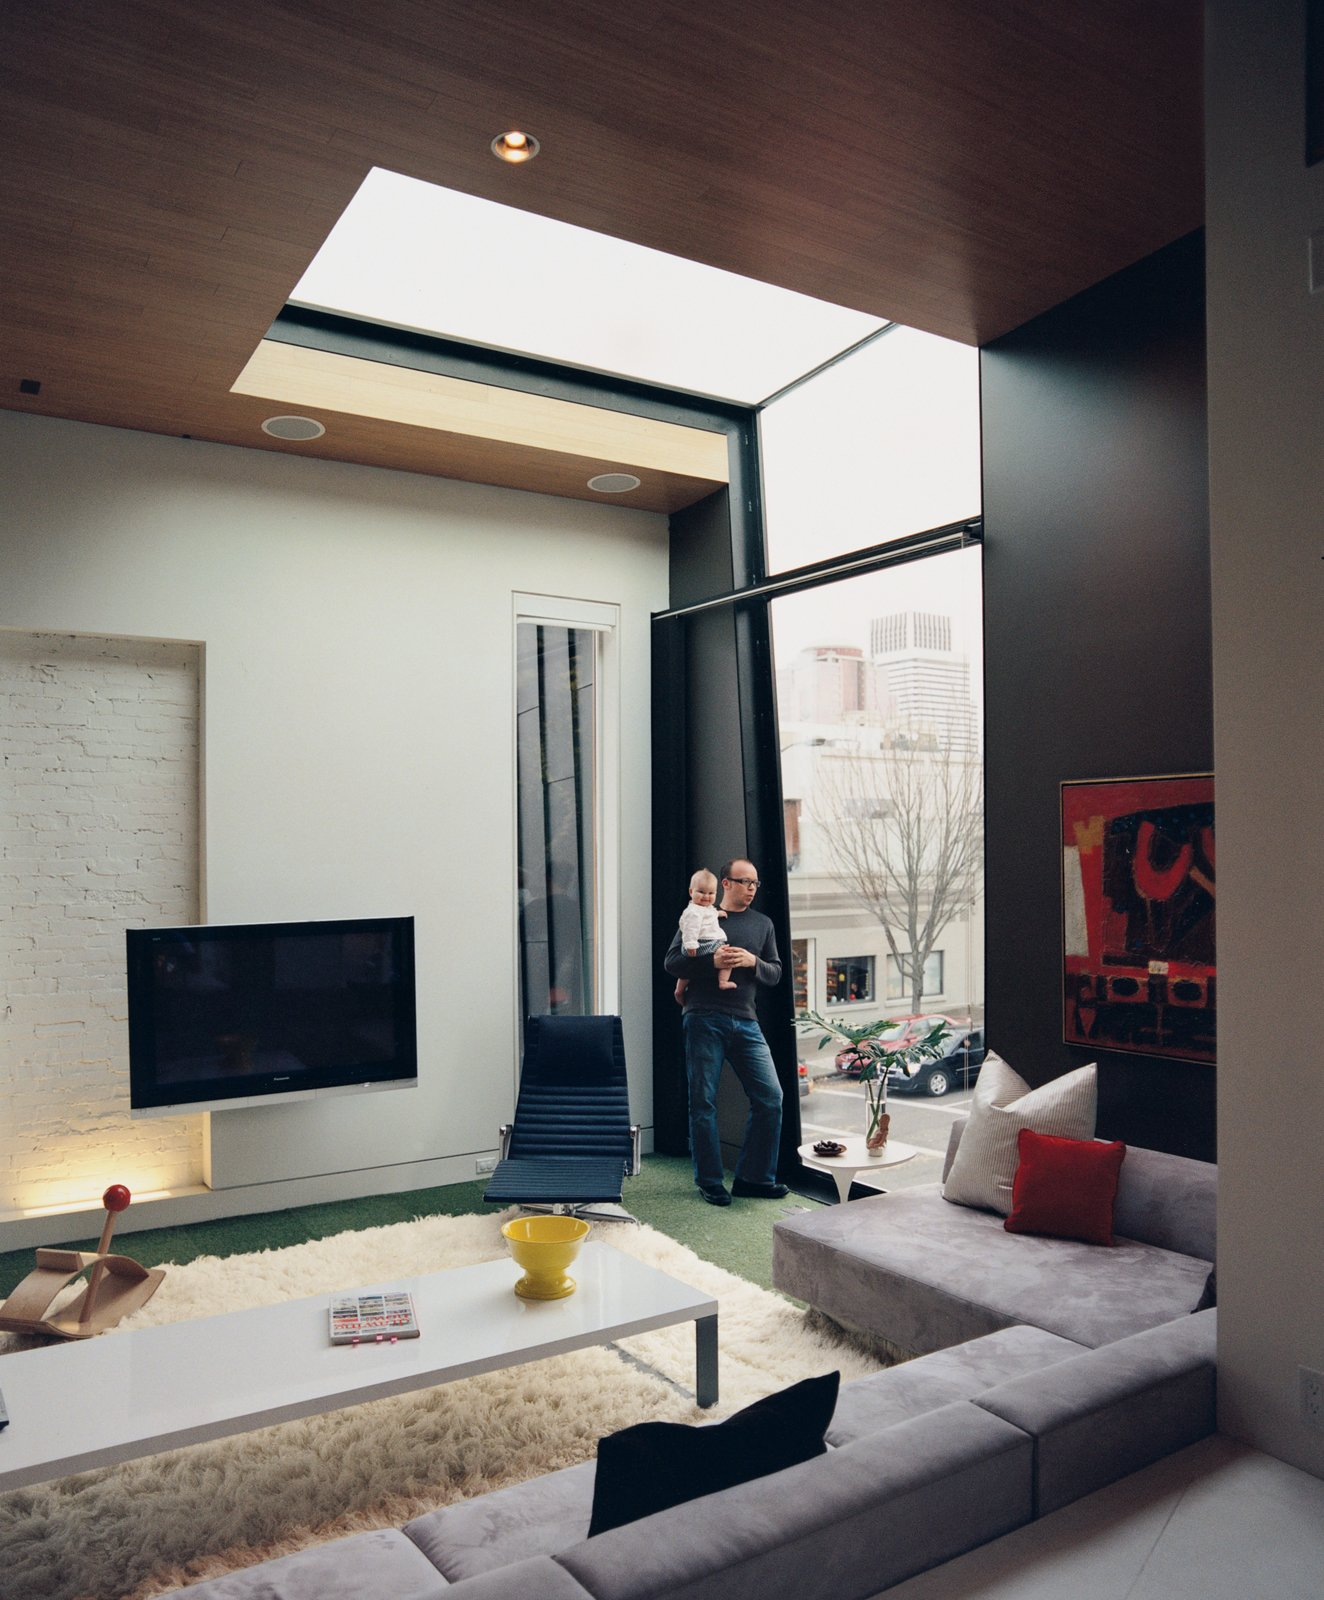 In the living room, a double-height window and a skylight work together to frame a view of the Victorian Gothic church just across the street. Tagged: Living Room, Sectional, and Rug Floor. Show-Stealing Skylights in Modern Homes by Zachary Edelson